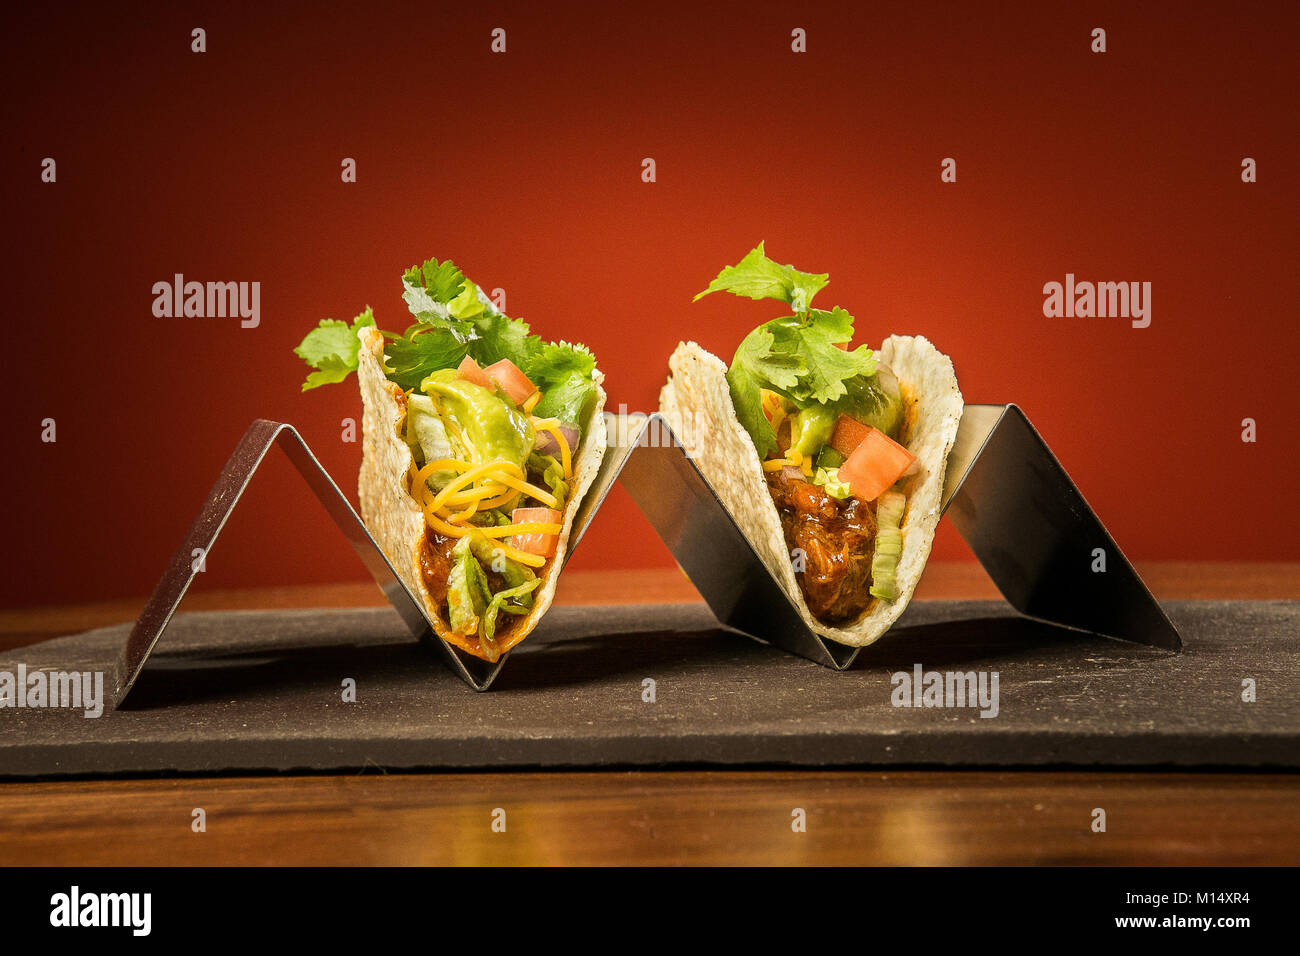 Pulled Pork Taco on a stainless steel stand with a red background on a stone surface and wood table. Photography - Stock Image